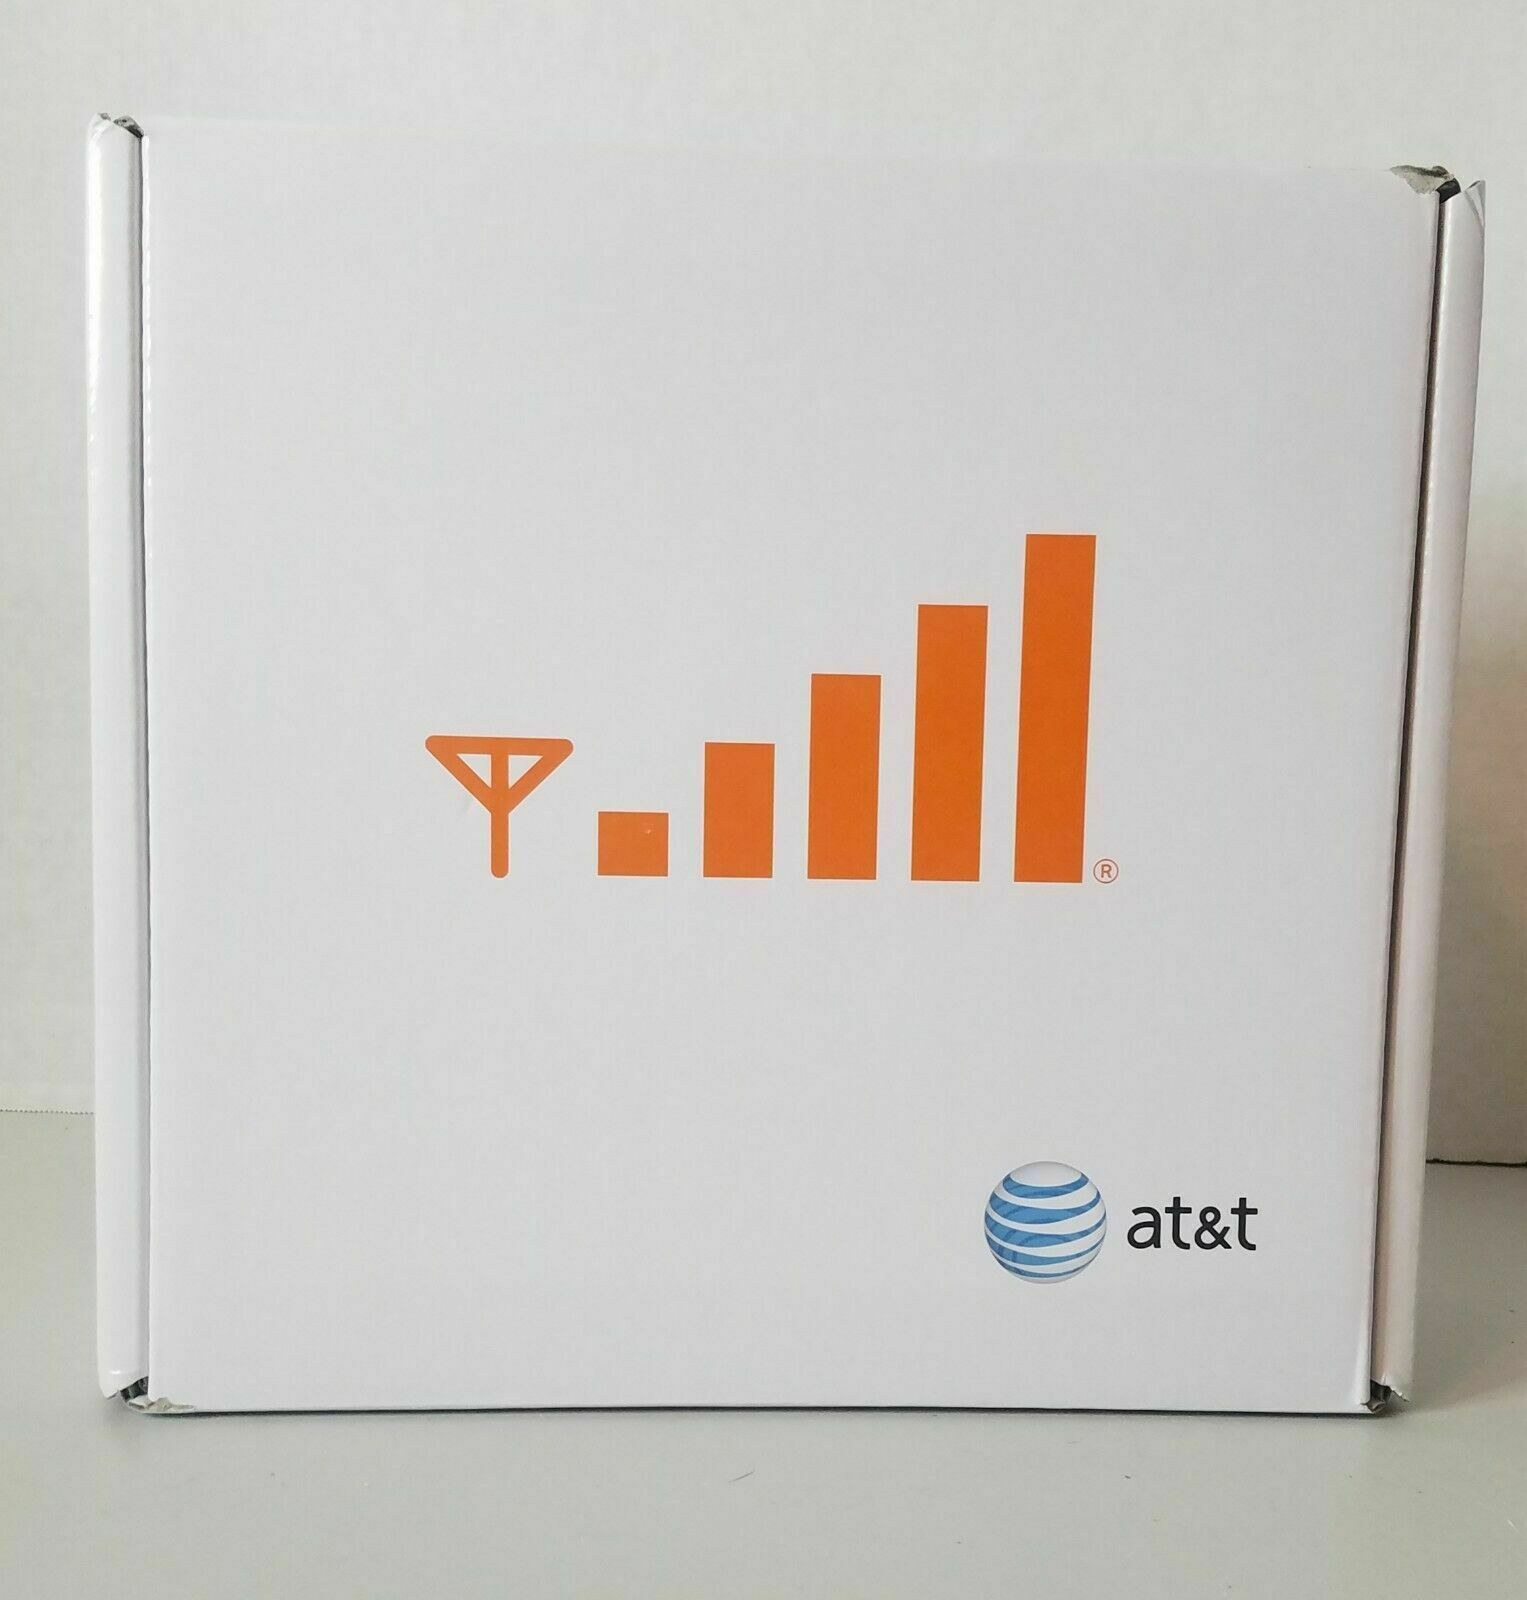 AT&T Cisco 3G Microcell DPH151-AT Cell Phone Signal Booster